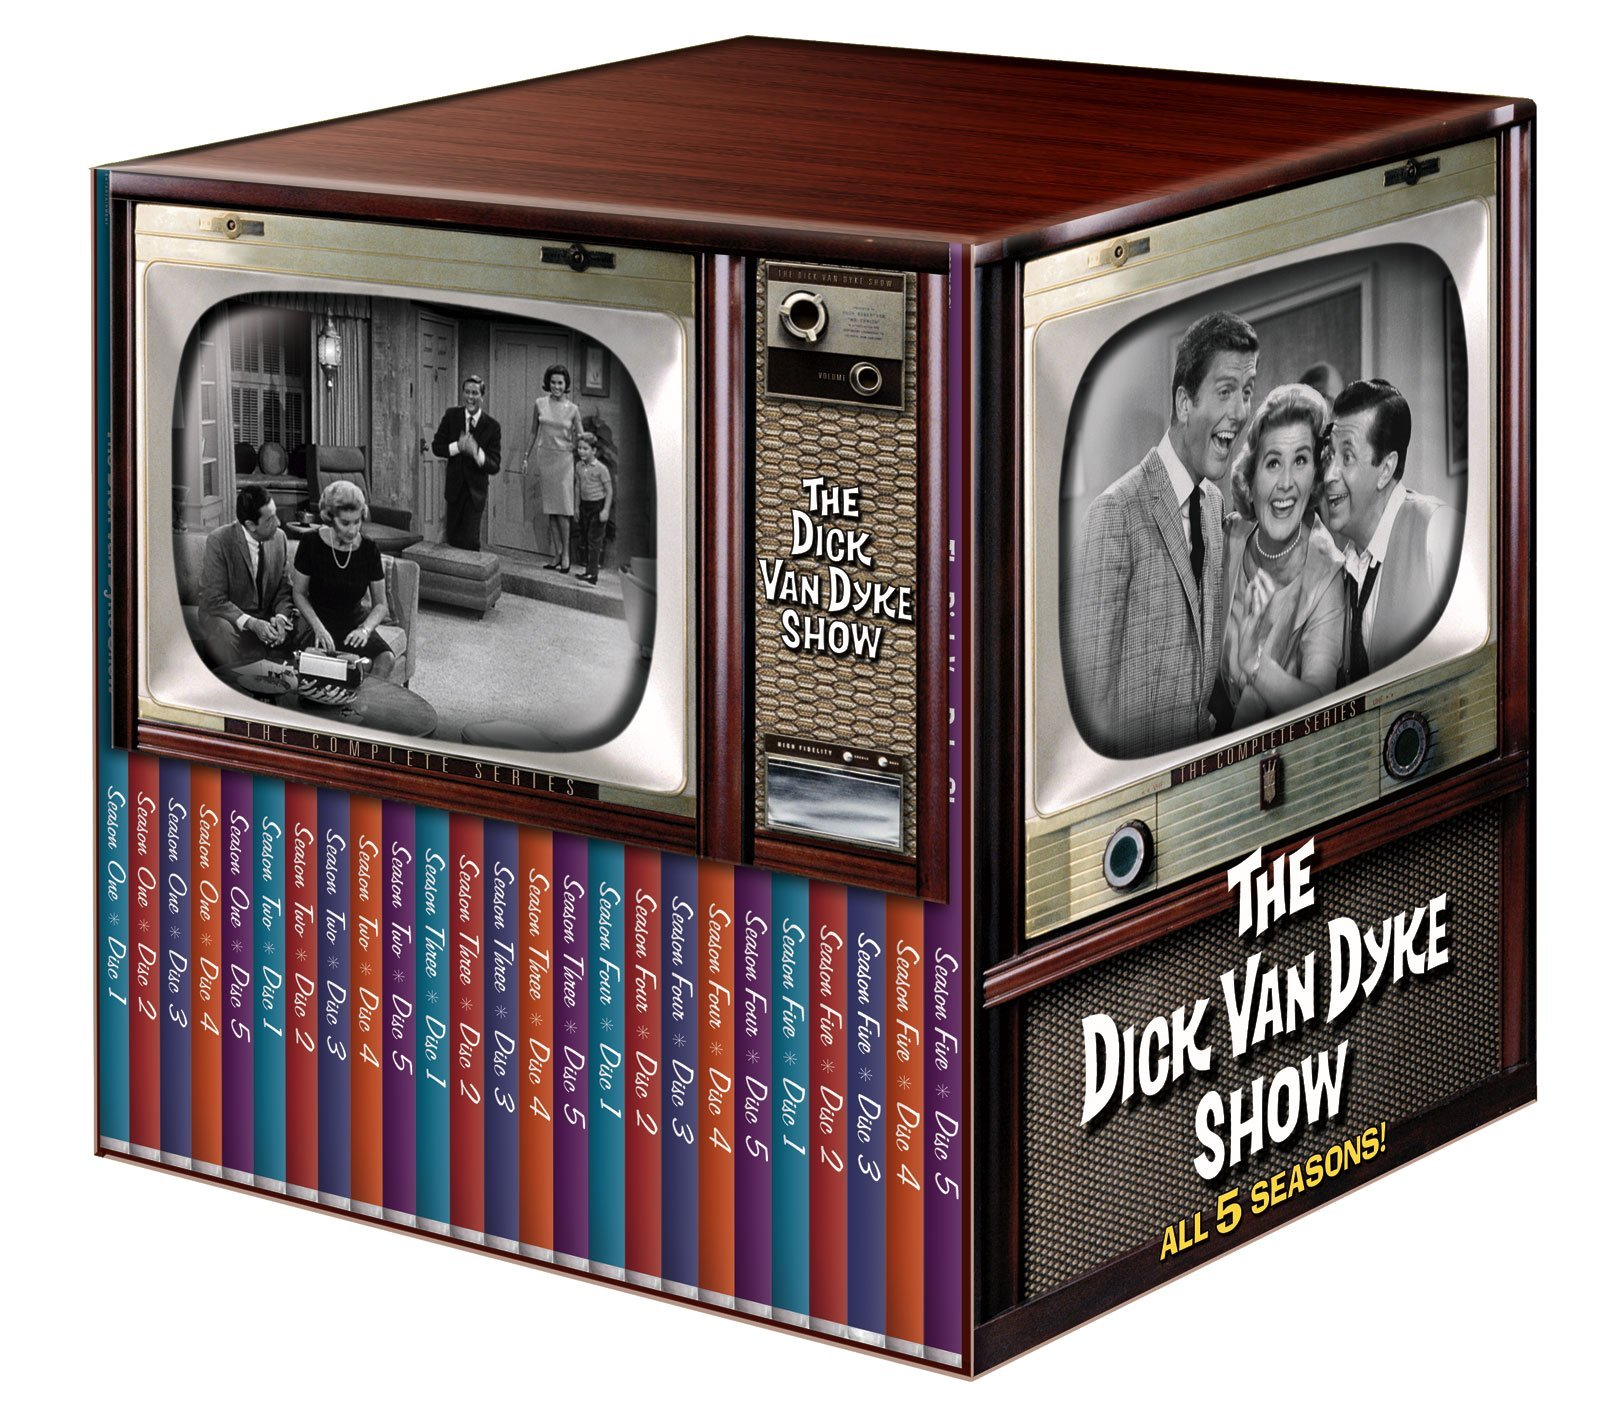 The Dick Van Dyke Show - The Complete Series by Image Entertainment